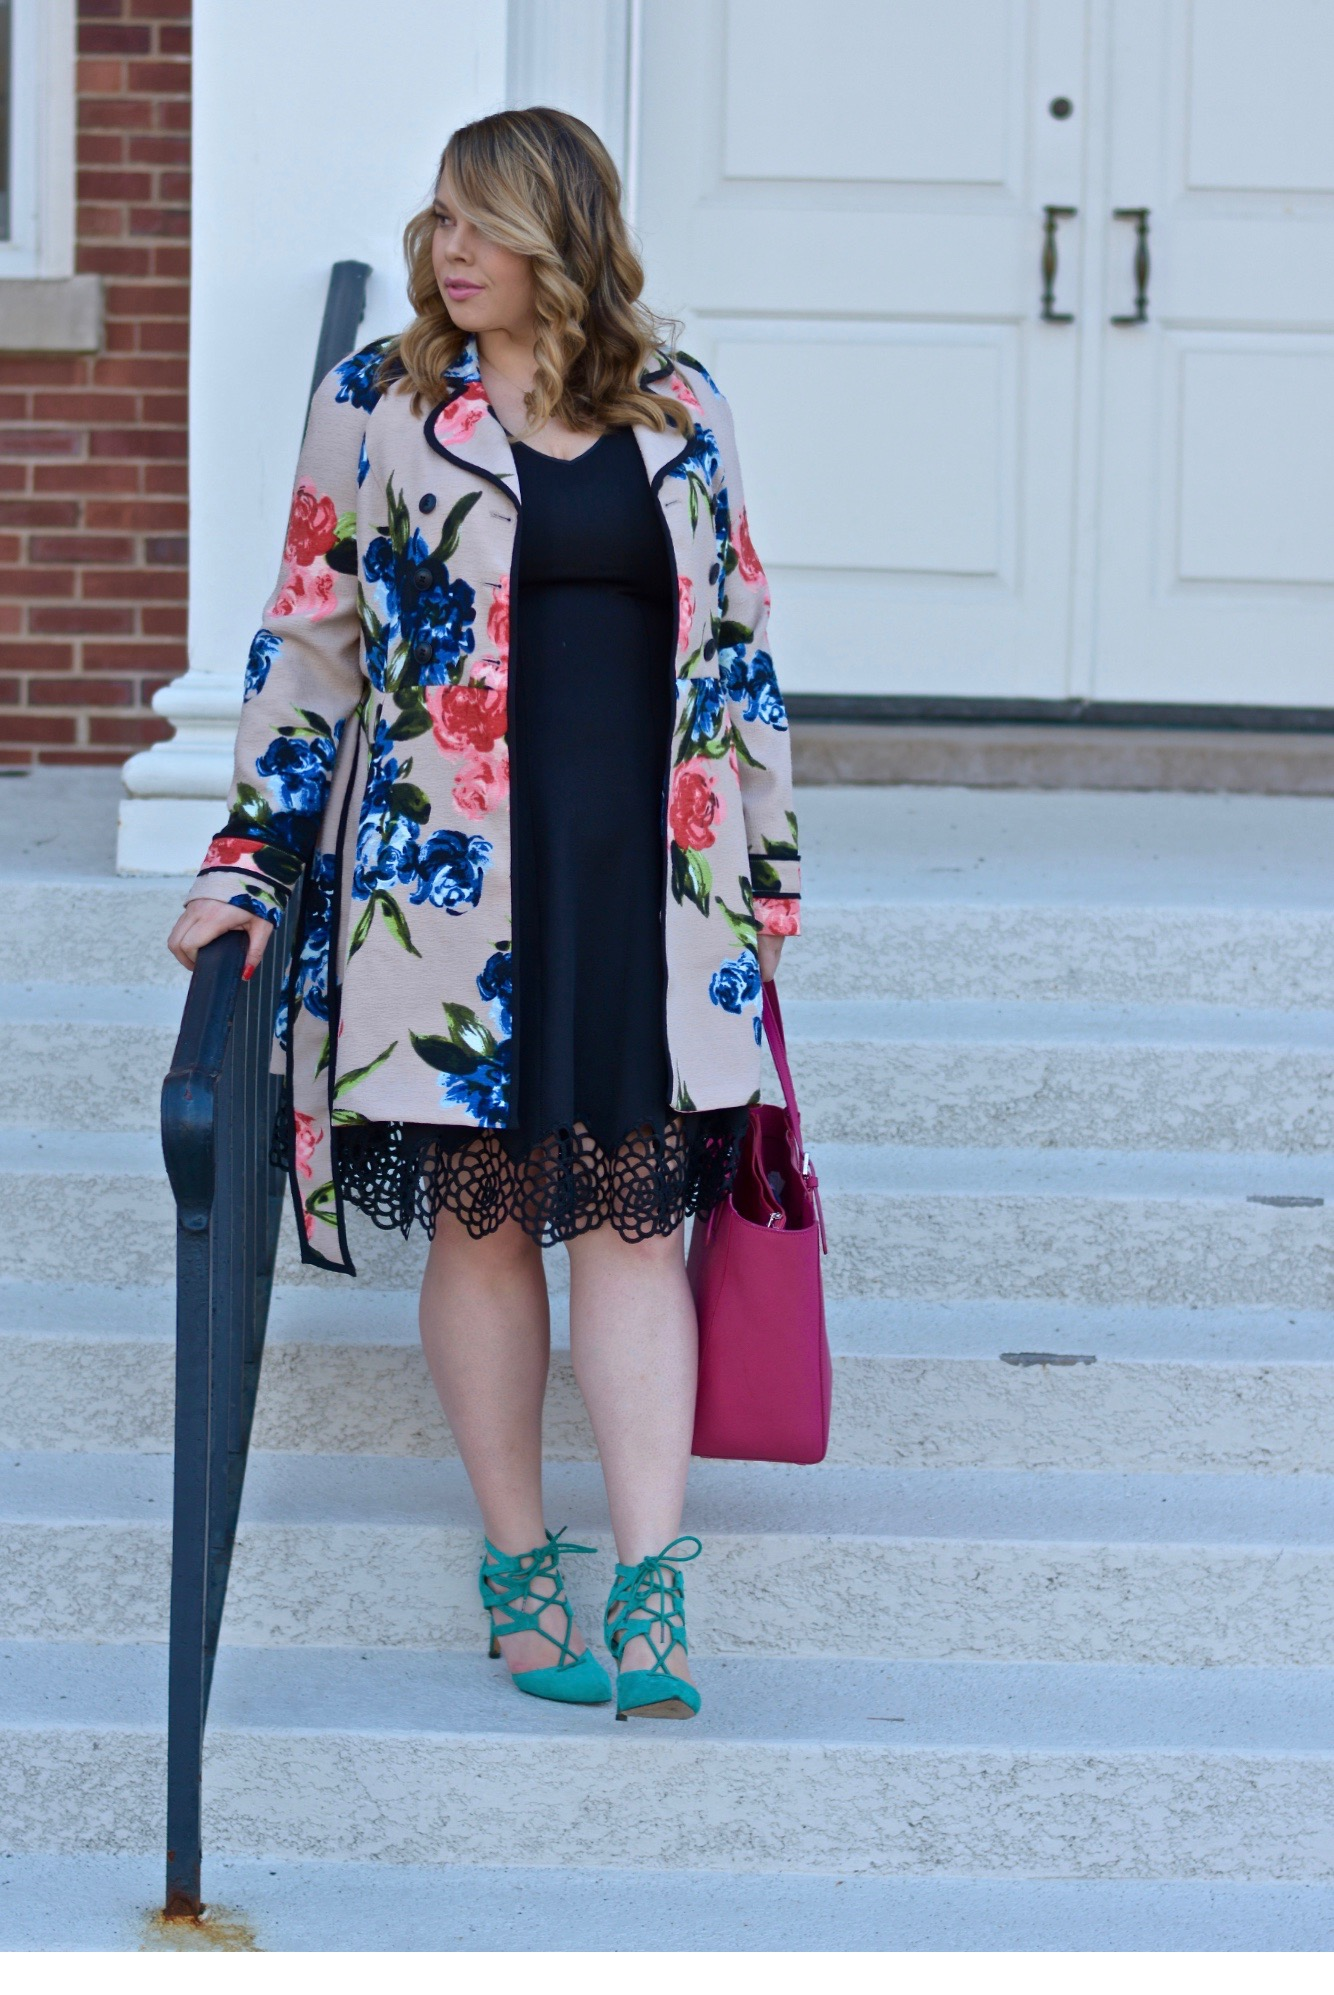 workwear-wednesday-florals-5